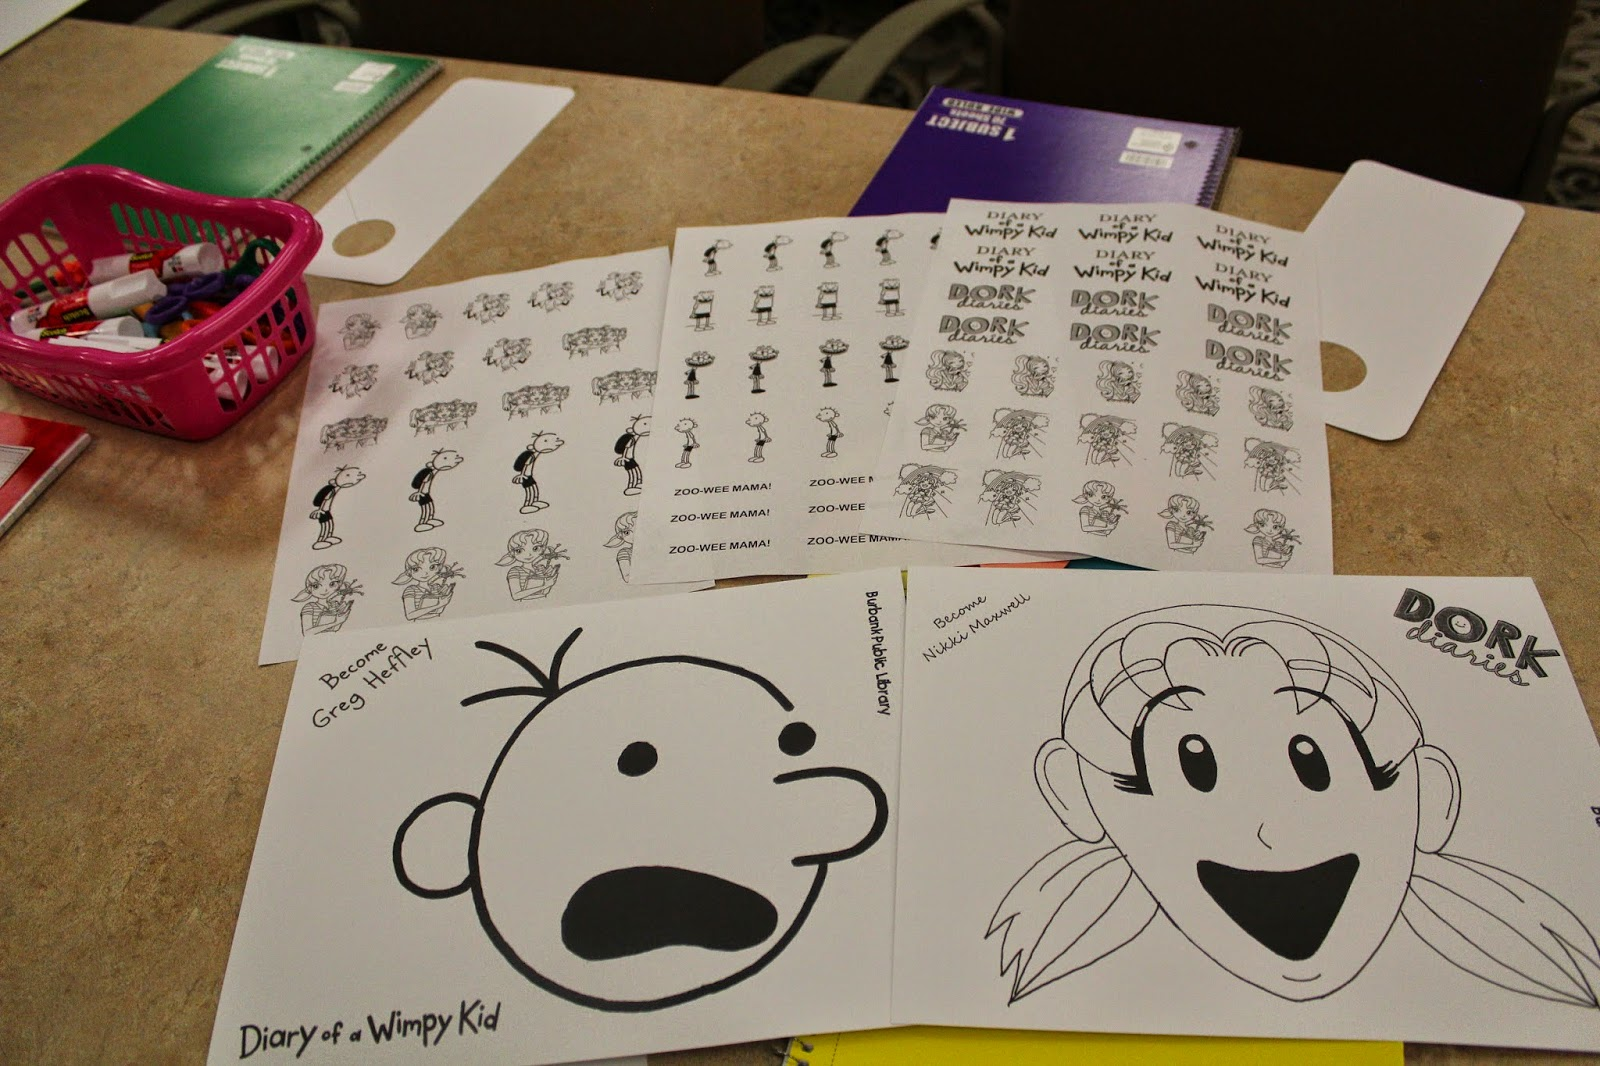 Make your own diary of a wimpy kid book events at burbank directions print cut out your characters and paste all throughout the notebook no specific way of doing it just use your imagination solutioingenieria Images